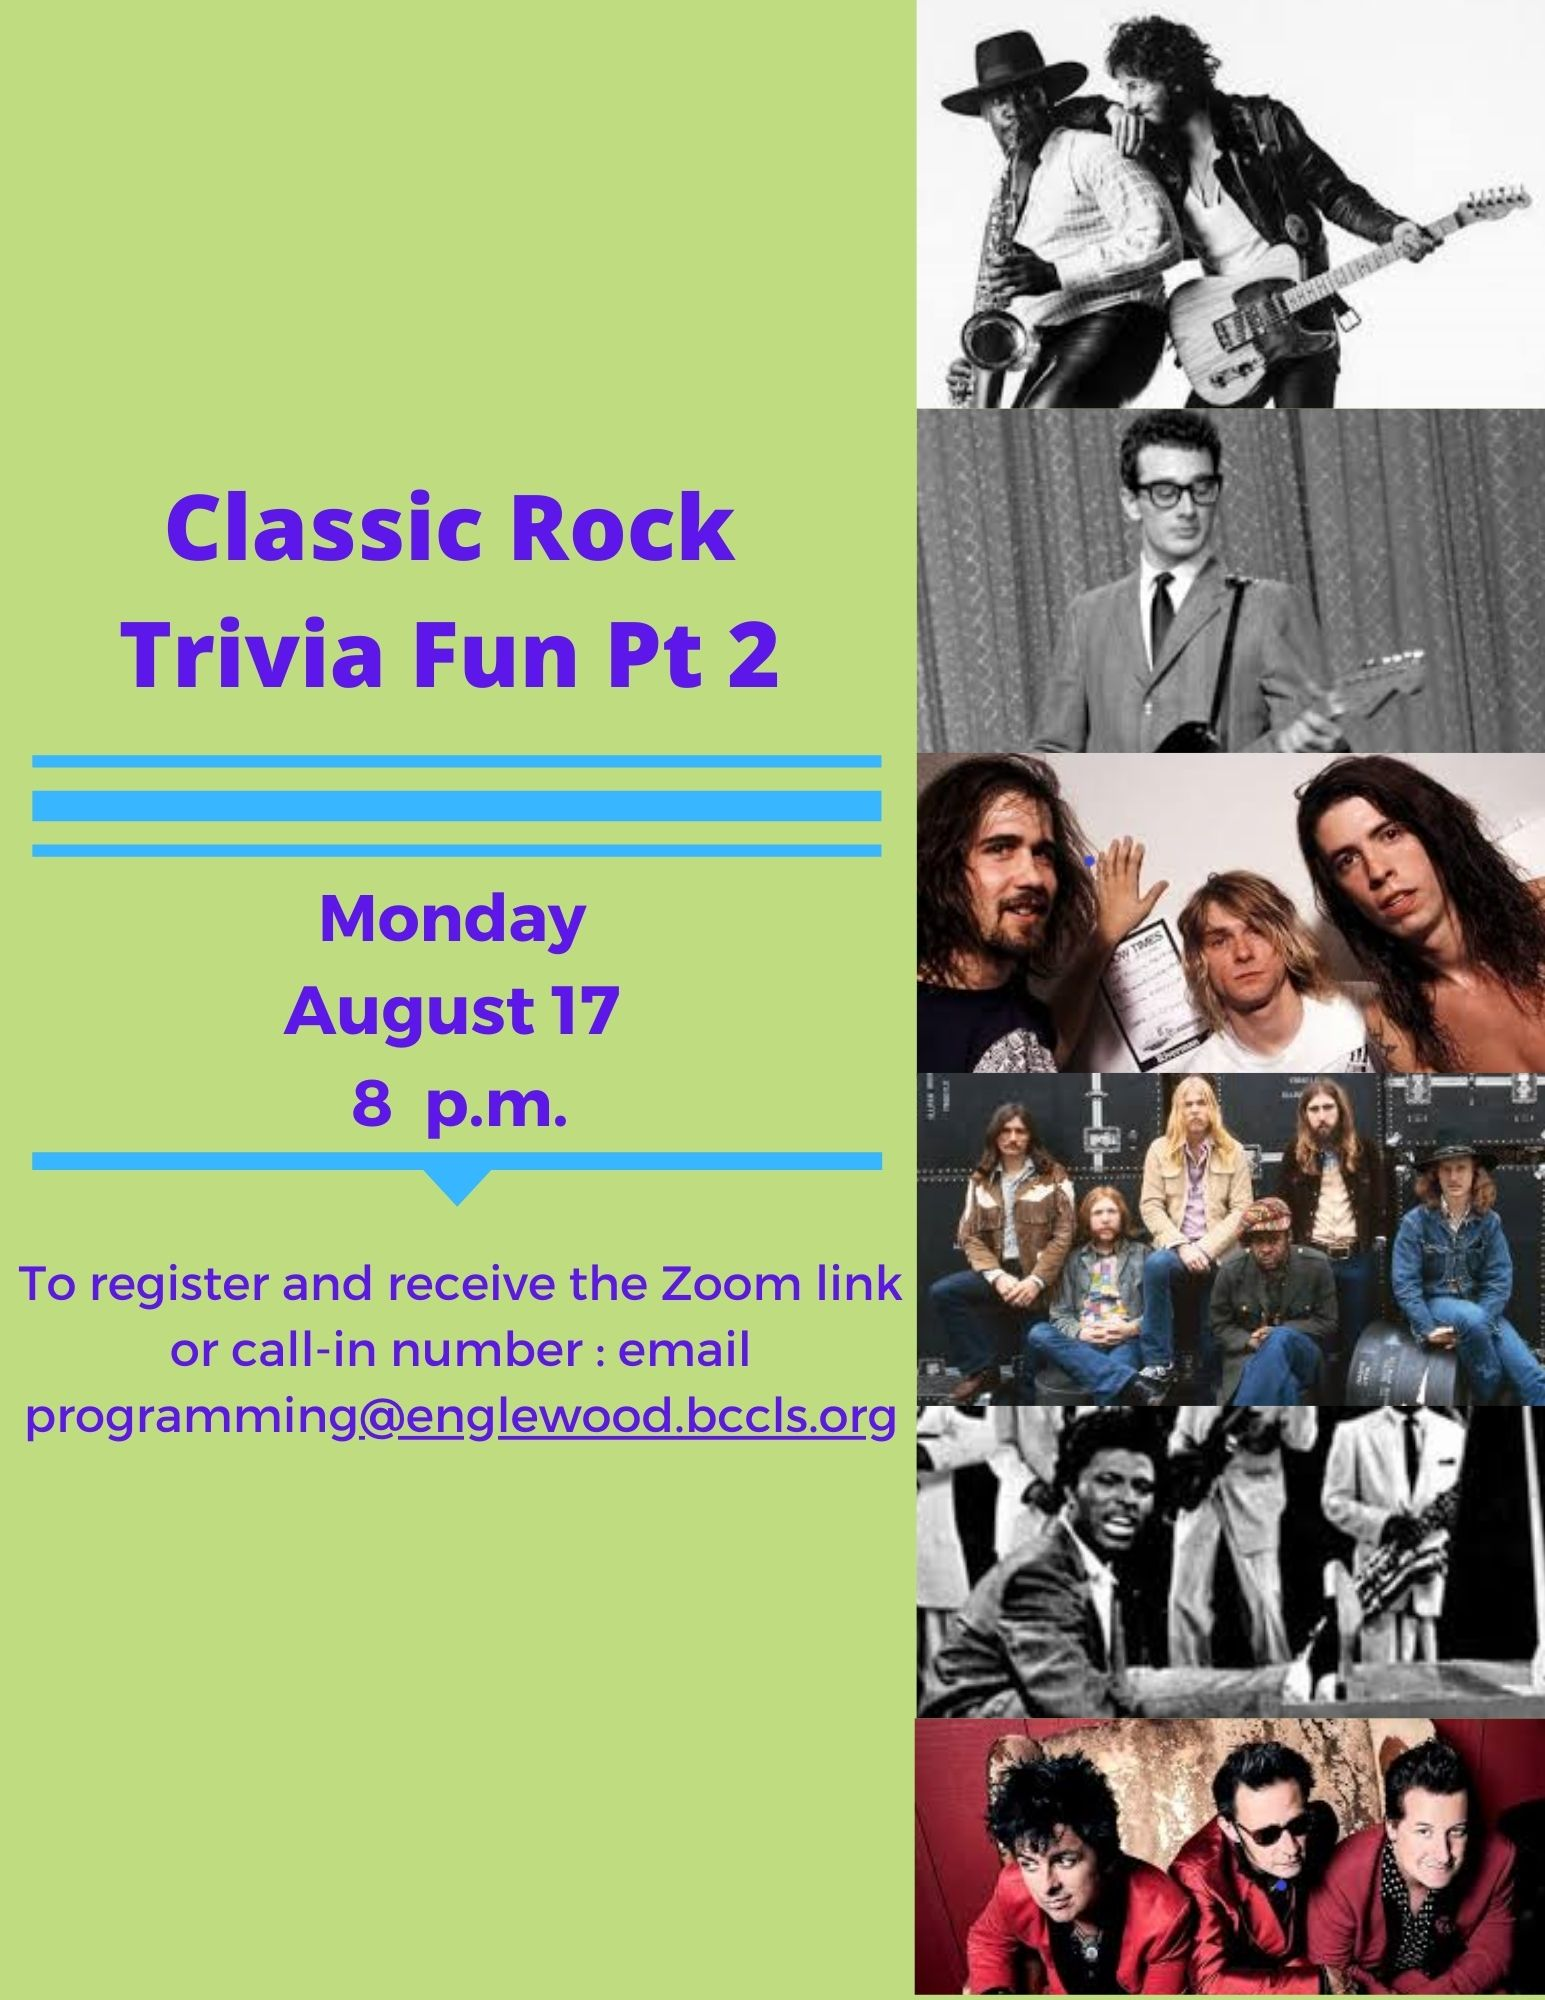 Monday Trivia via Zoom: Classic Rock Pt. 2